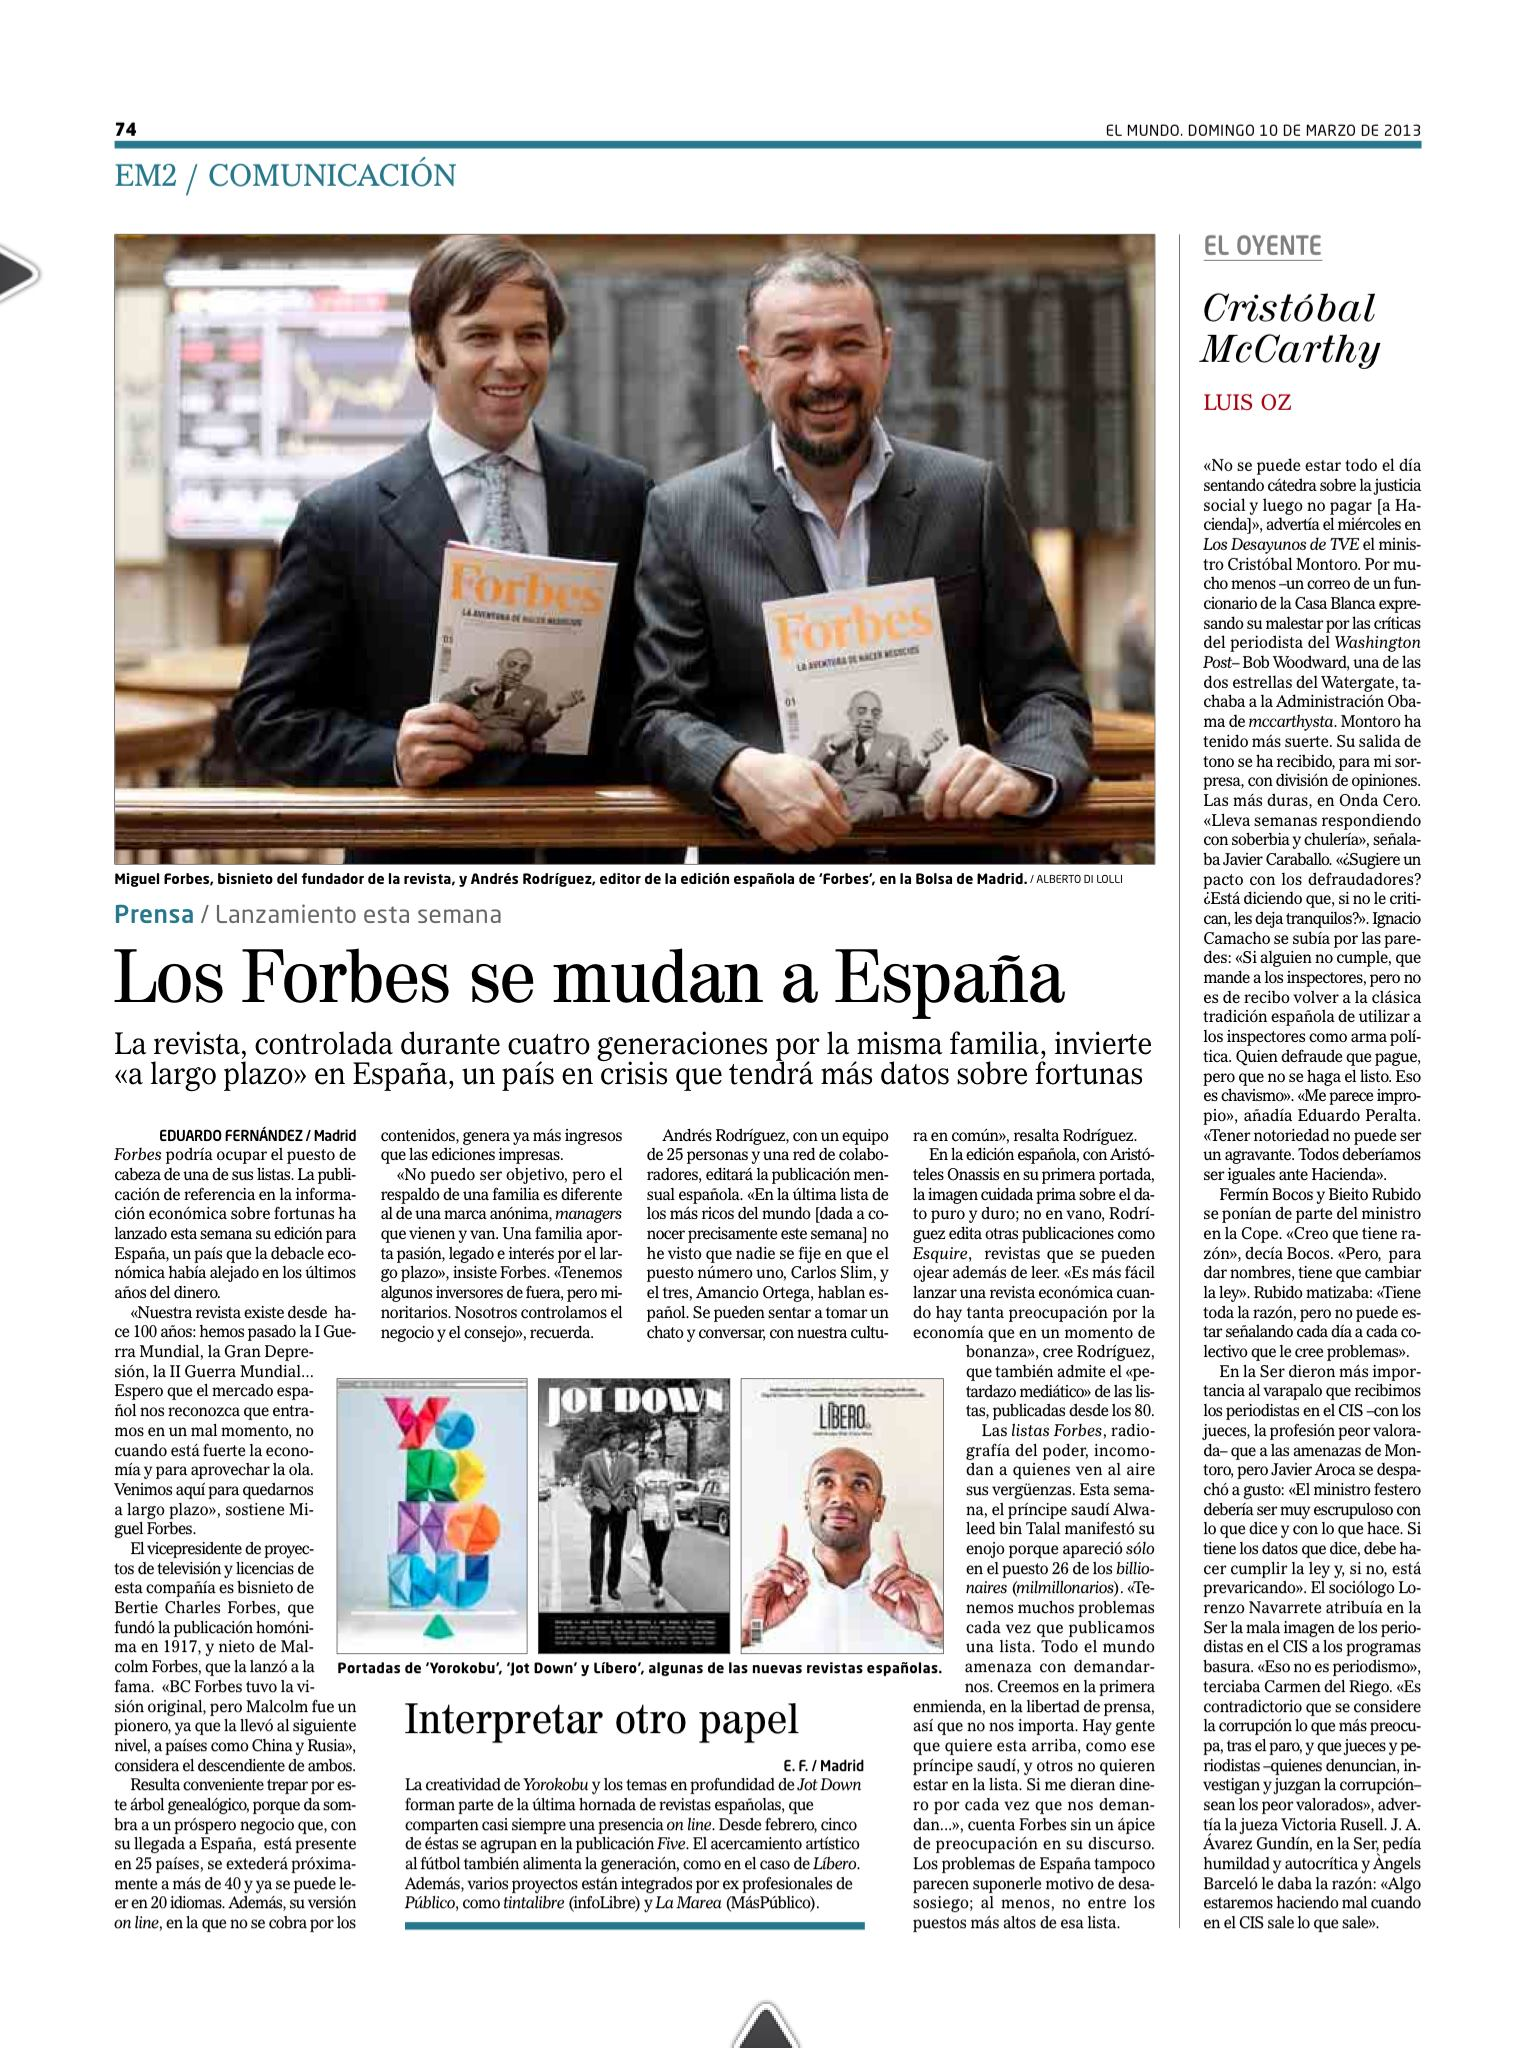 forbes and spain